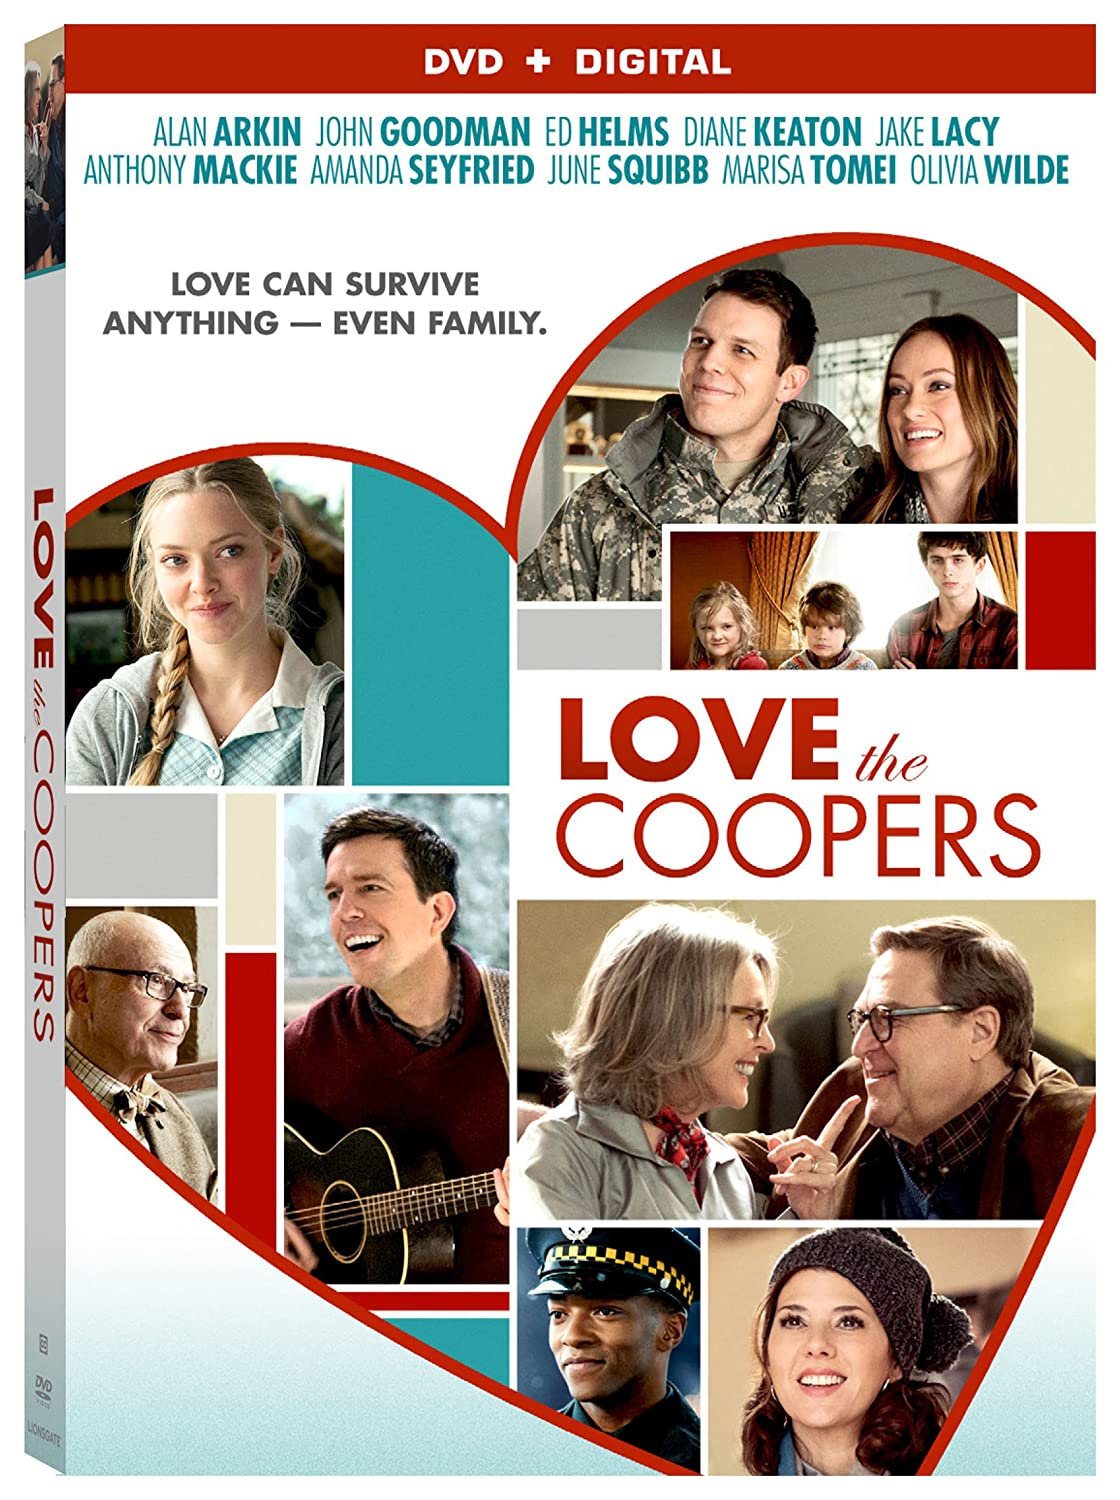 Amazon.com: Love The Coopers [DVD + Digital]: Alan Arkin, John ...